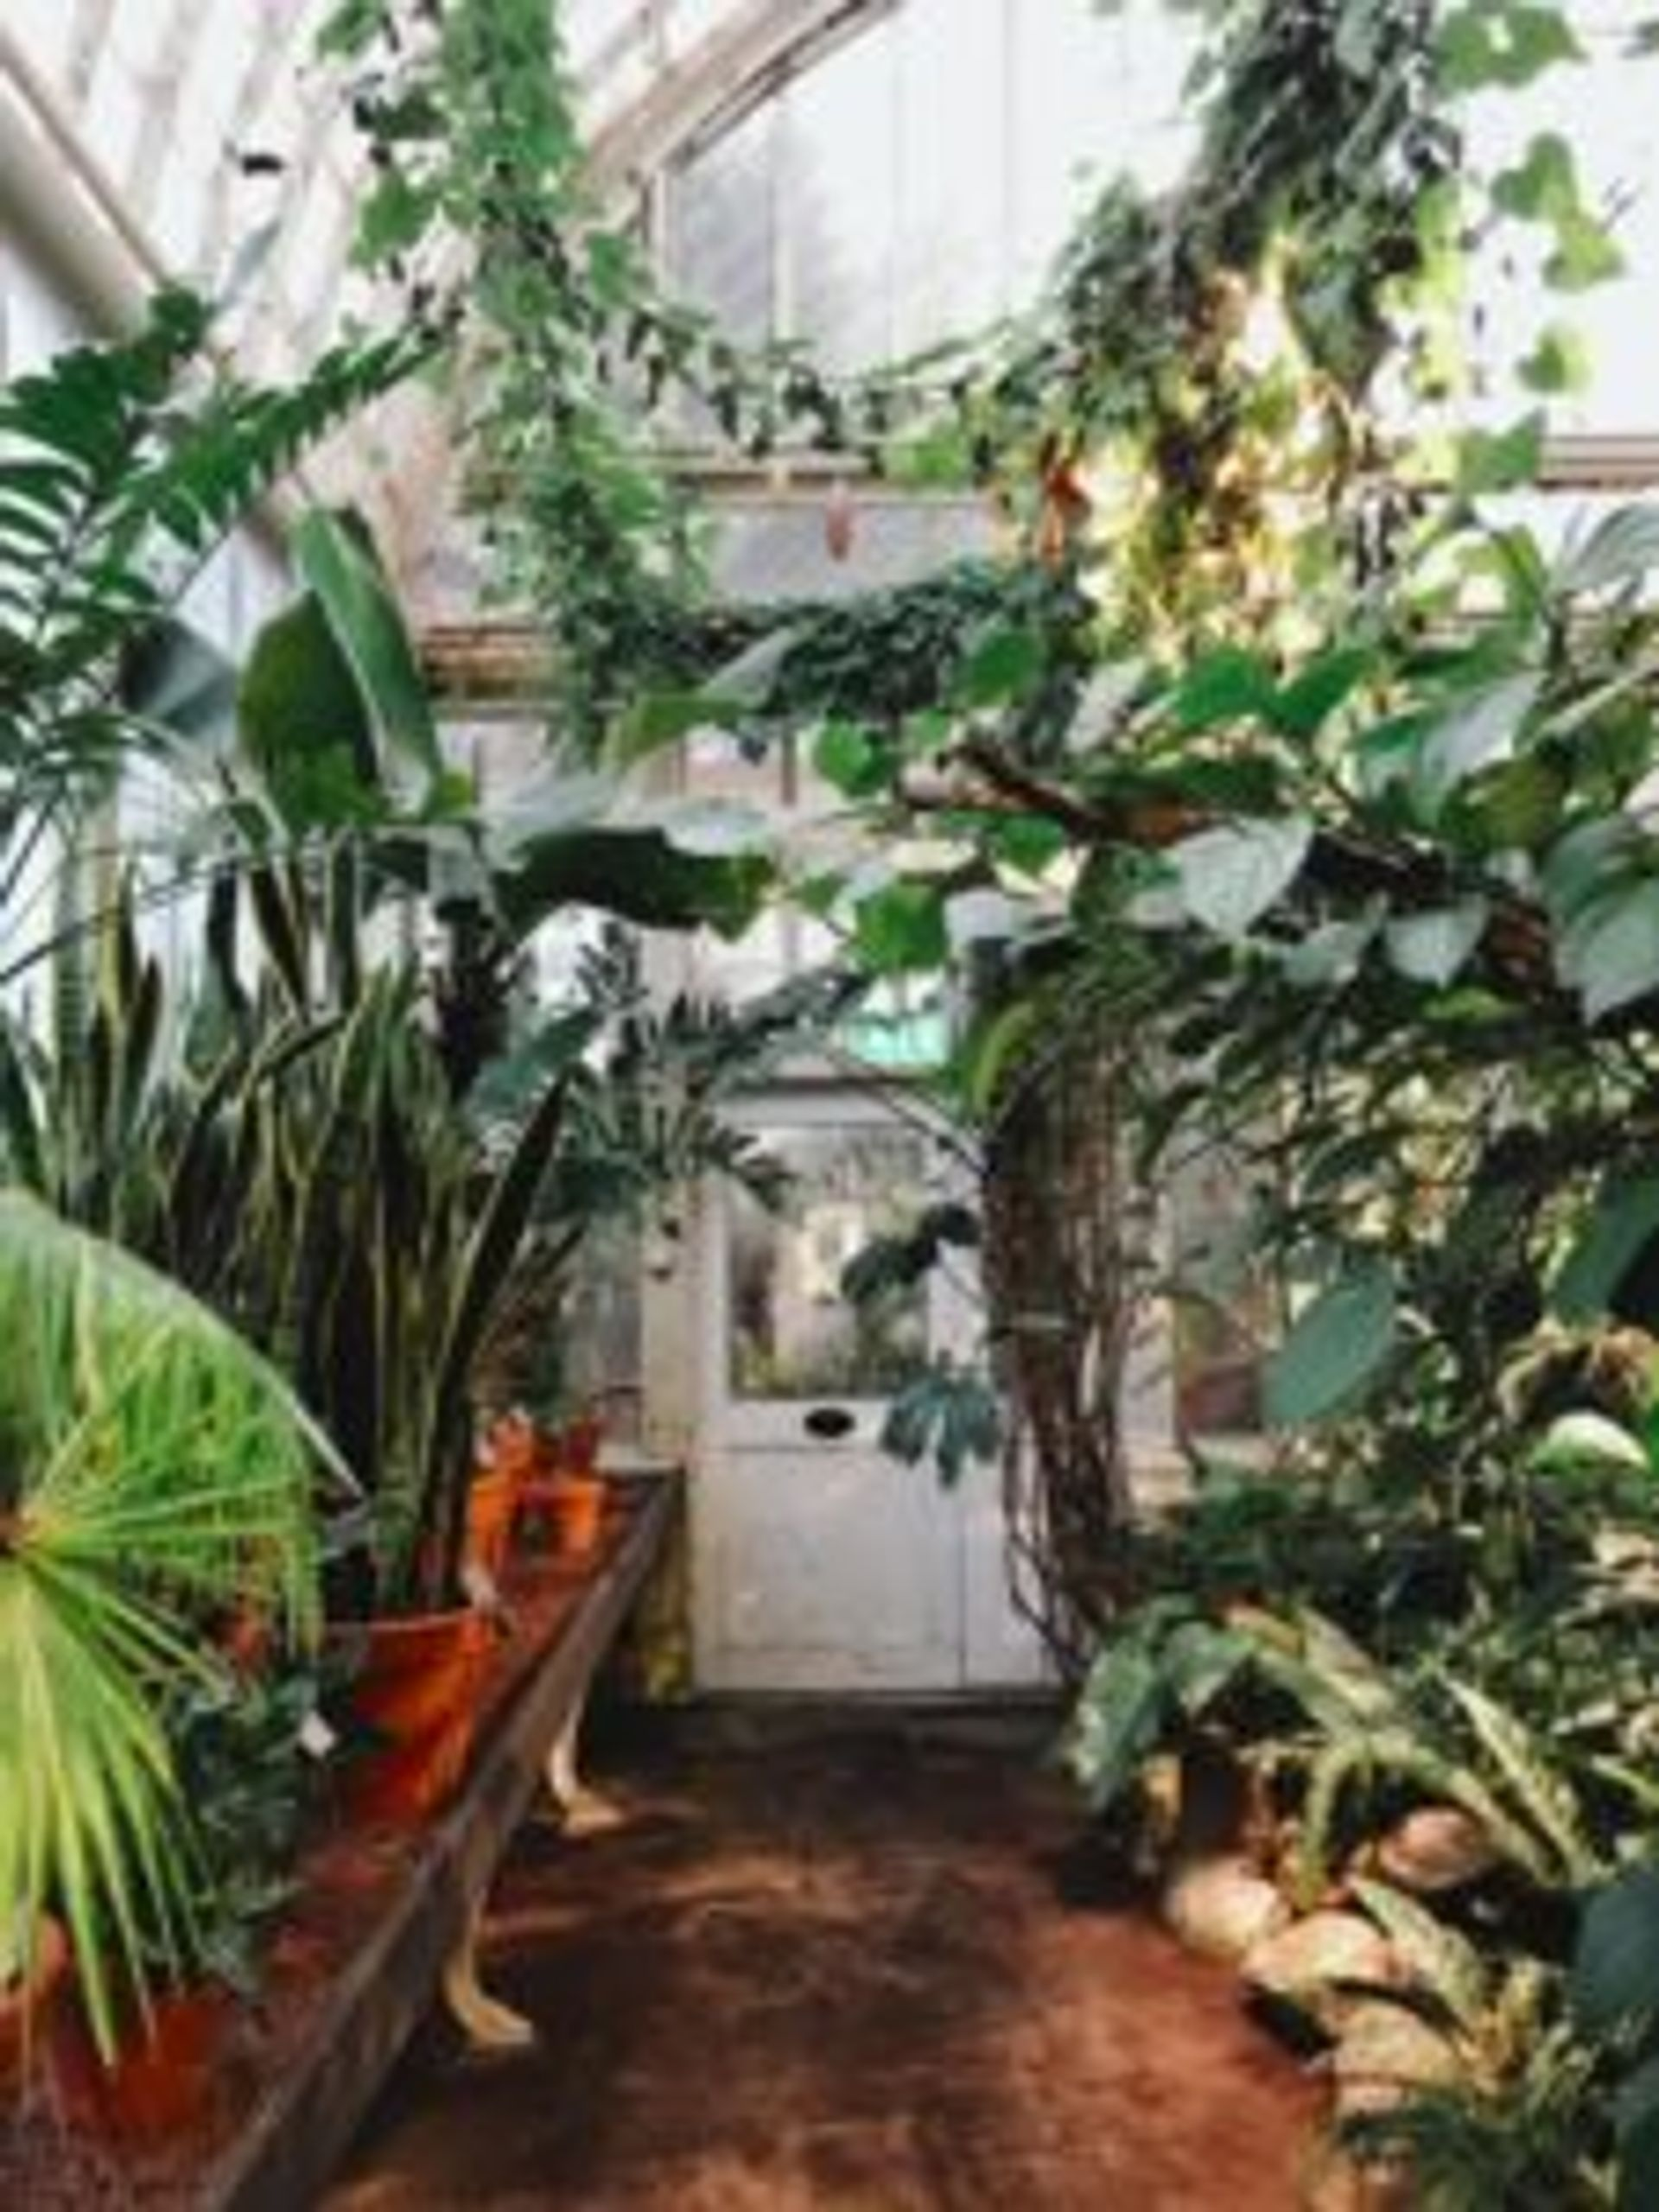 Tropical plants in a greenhouse.